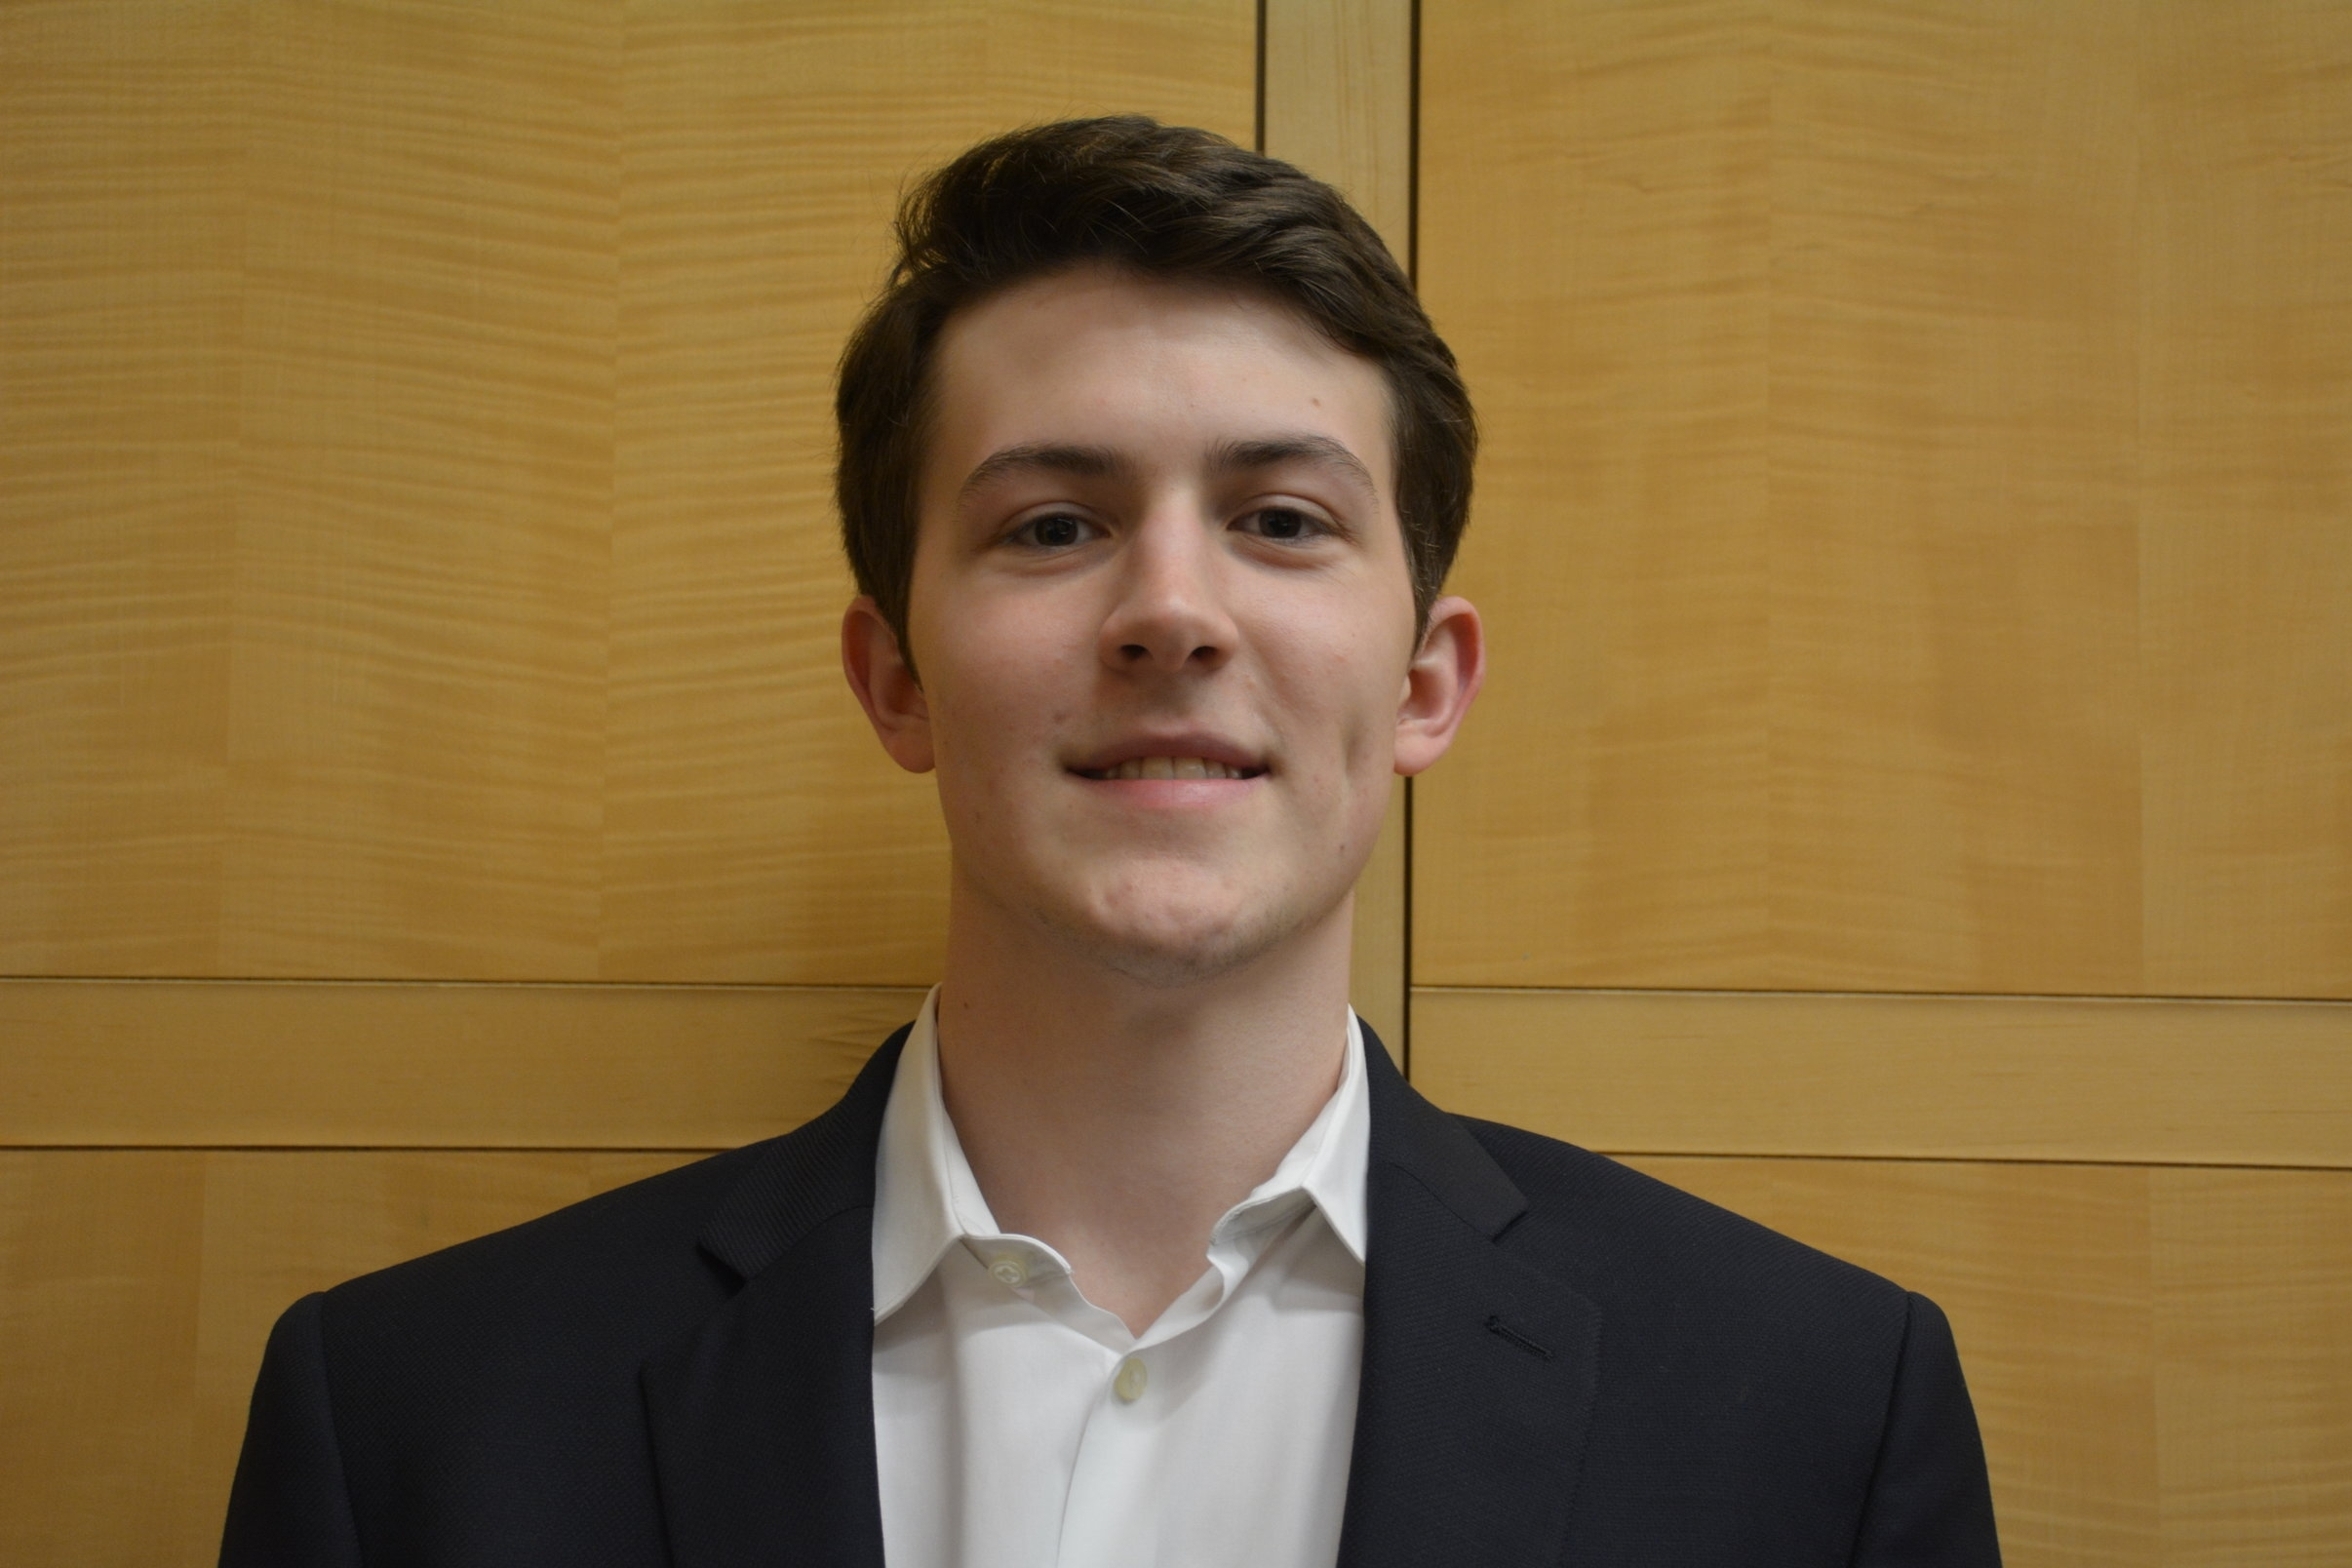 Michal Pisarek - Michal is a sophomore majoring in Operations Research in the College of Engineering. He joined CBR his sophomore fall and is also a member of his social fraternity Phi Kappa Psi. After graduation Michal hopes to pursue a career in finance.